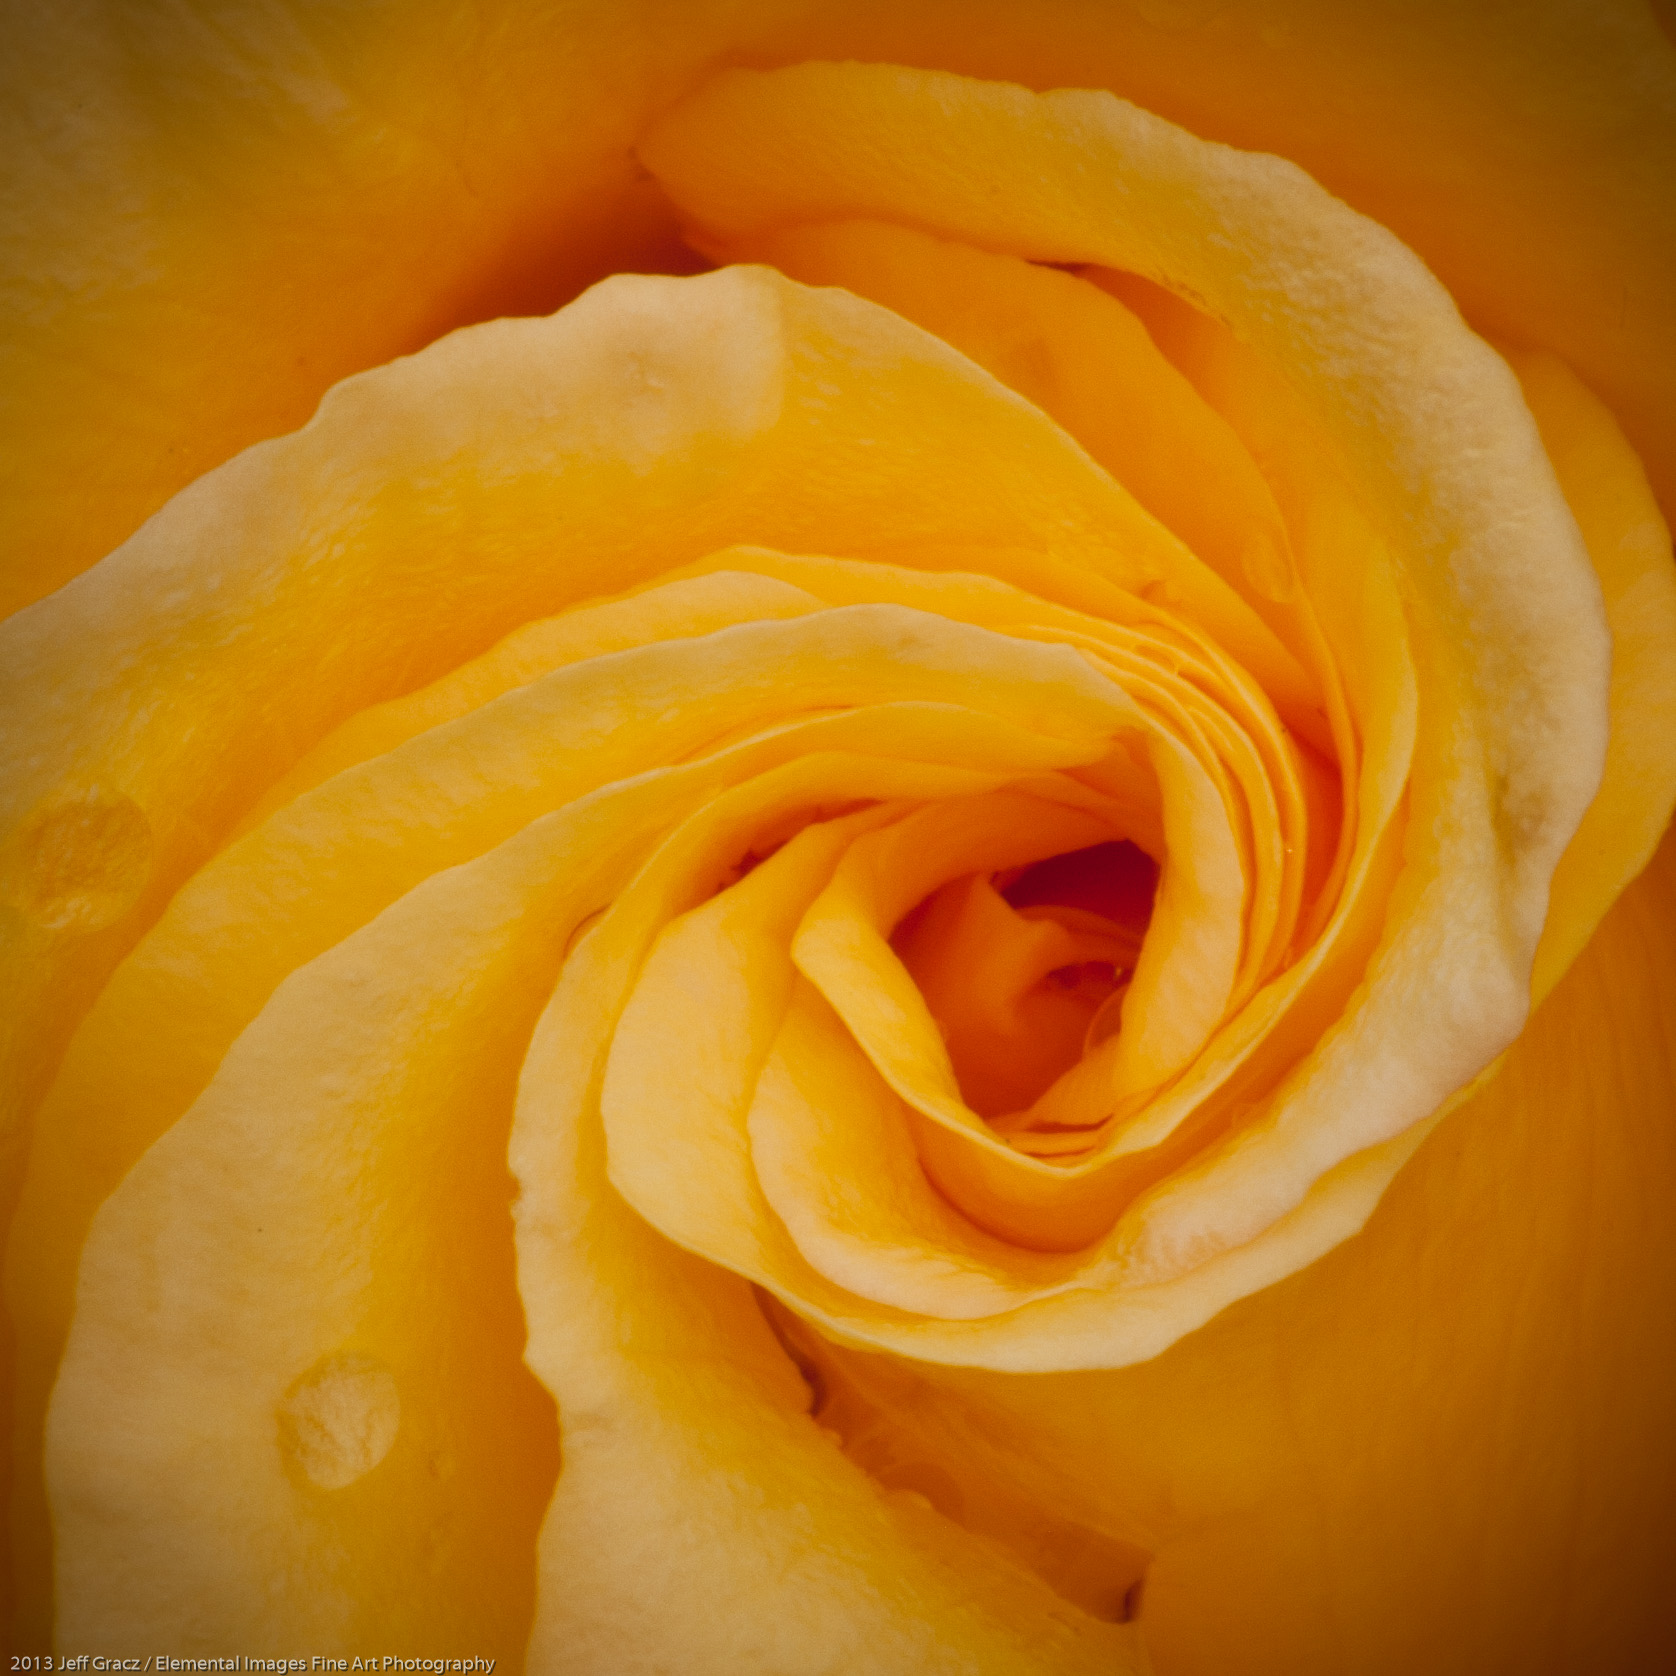 Roses LII | Portland | OR | USA - © 2013 Jeff Gracz / Elemental Images Fine Art Photography - All Rights Reserved Worldwide